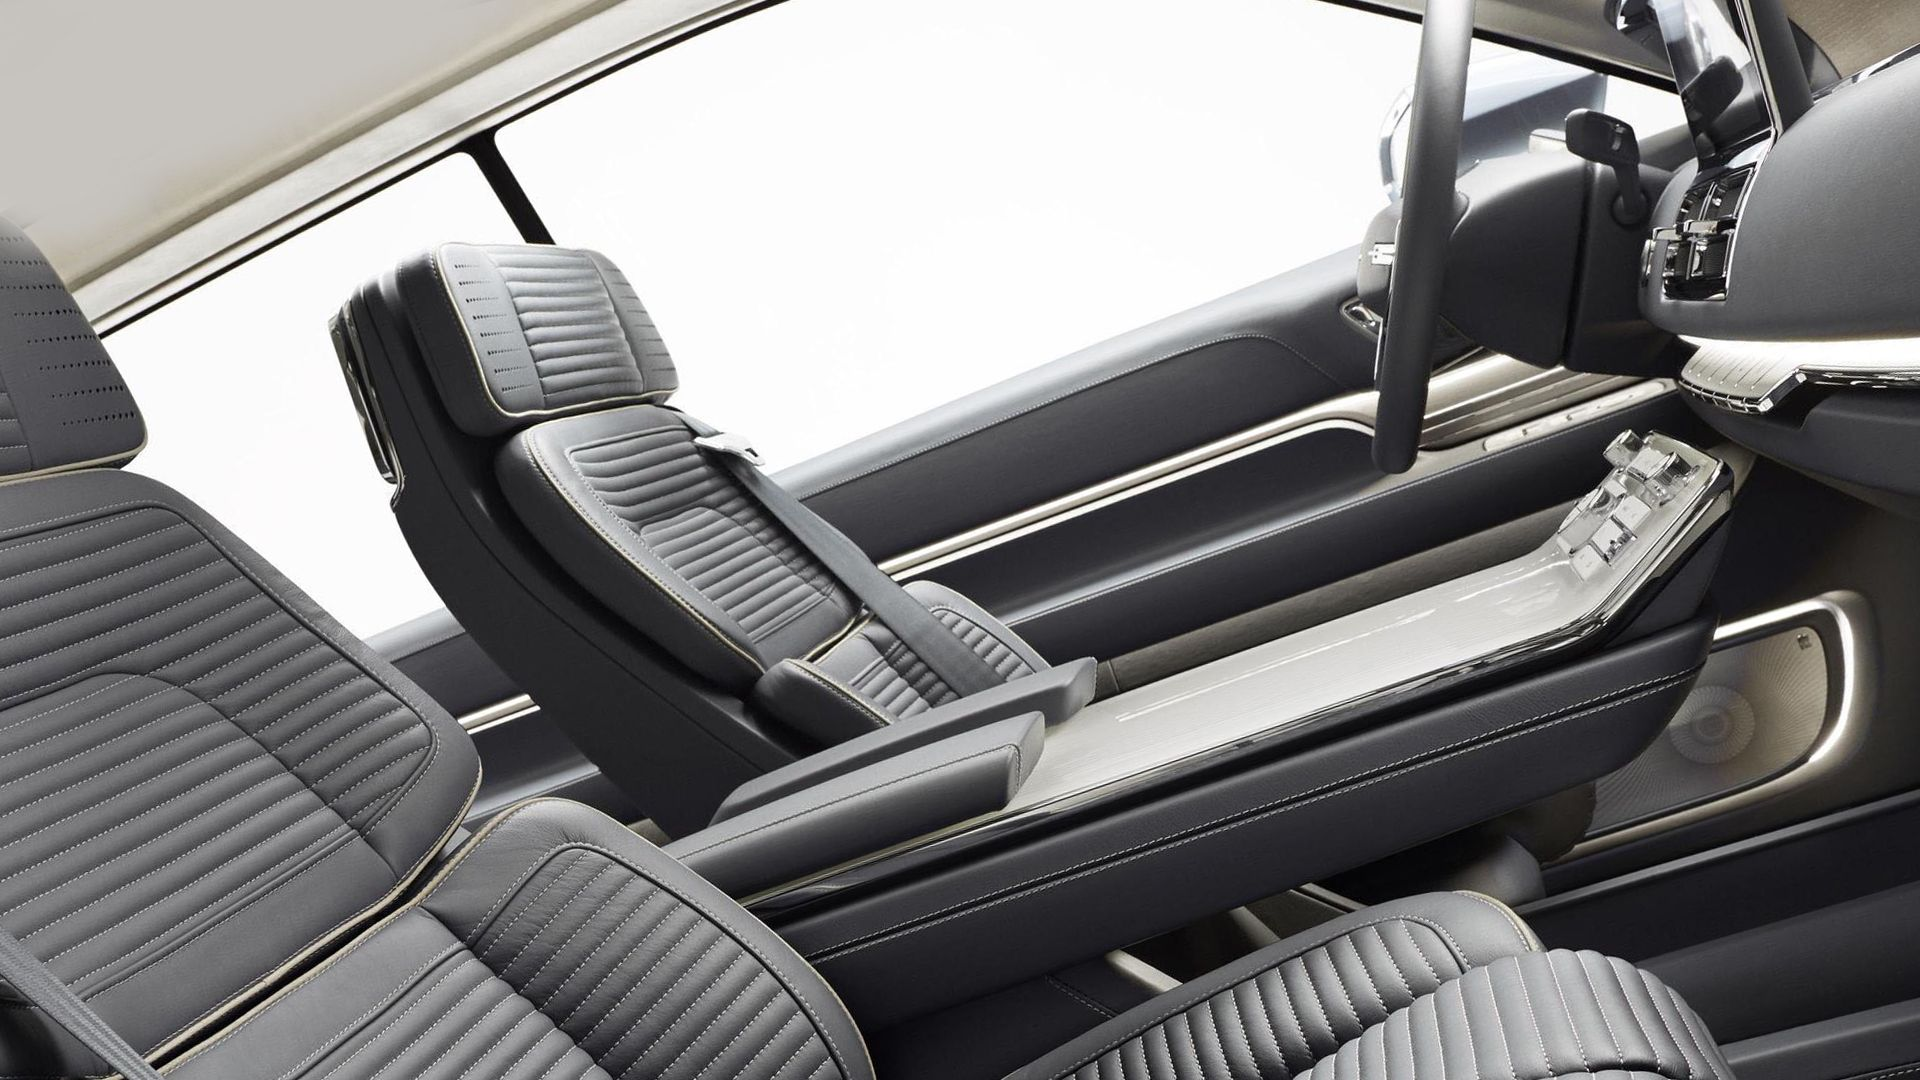 New 2018 Lincoln Navigator Interior Features